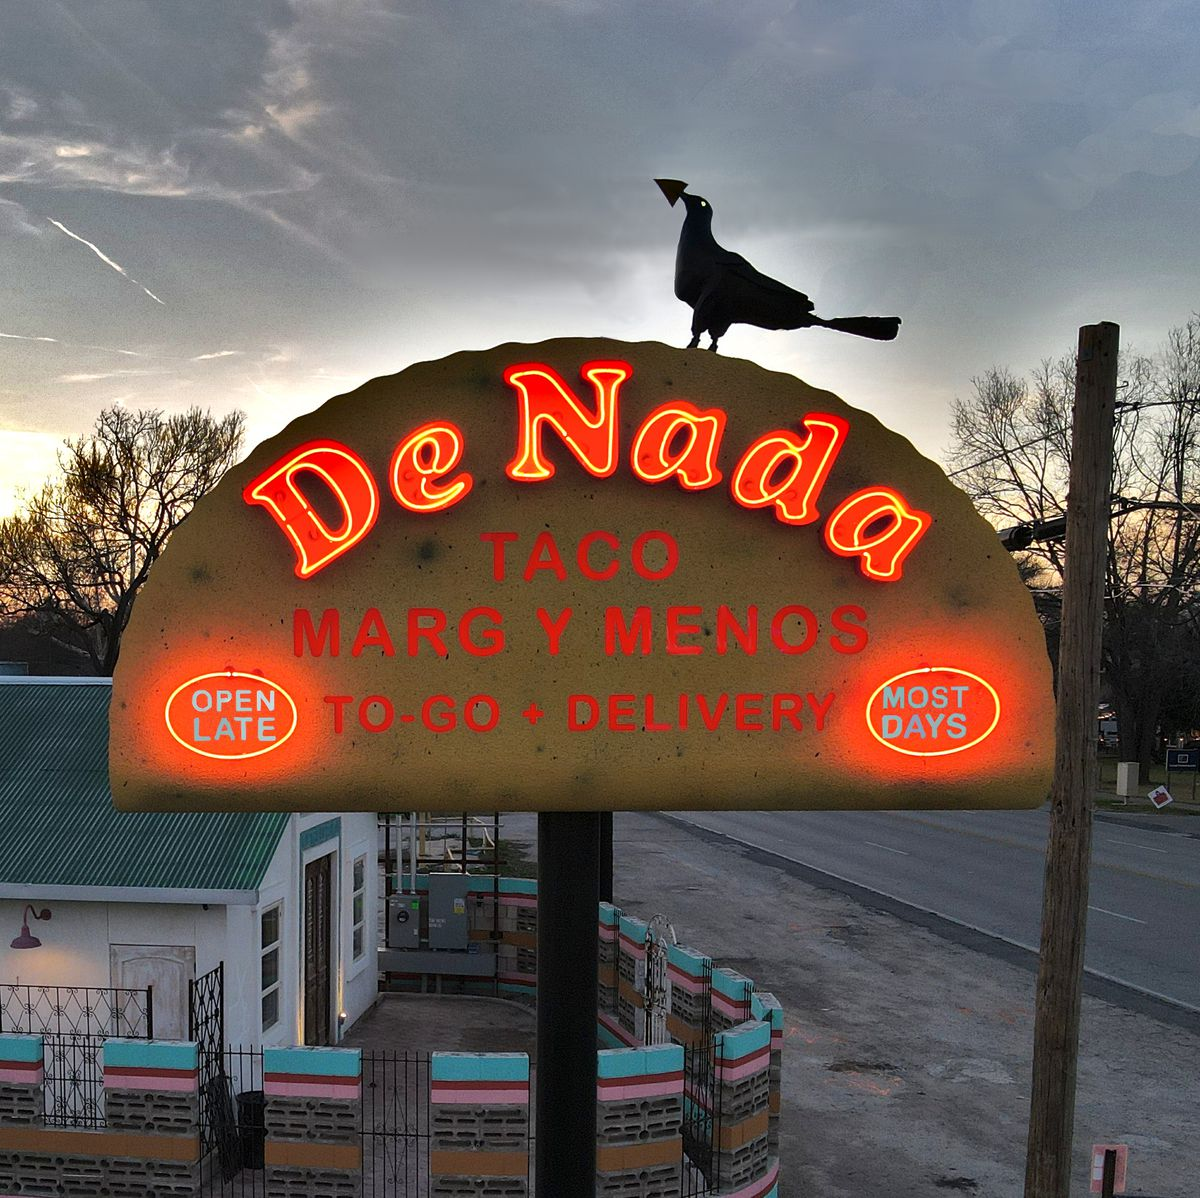 A lit sign that says De Nada Tacos Margs Y Menos Takeout and Delivery. There's a grackle on top.